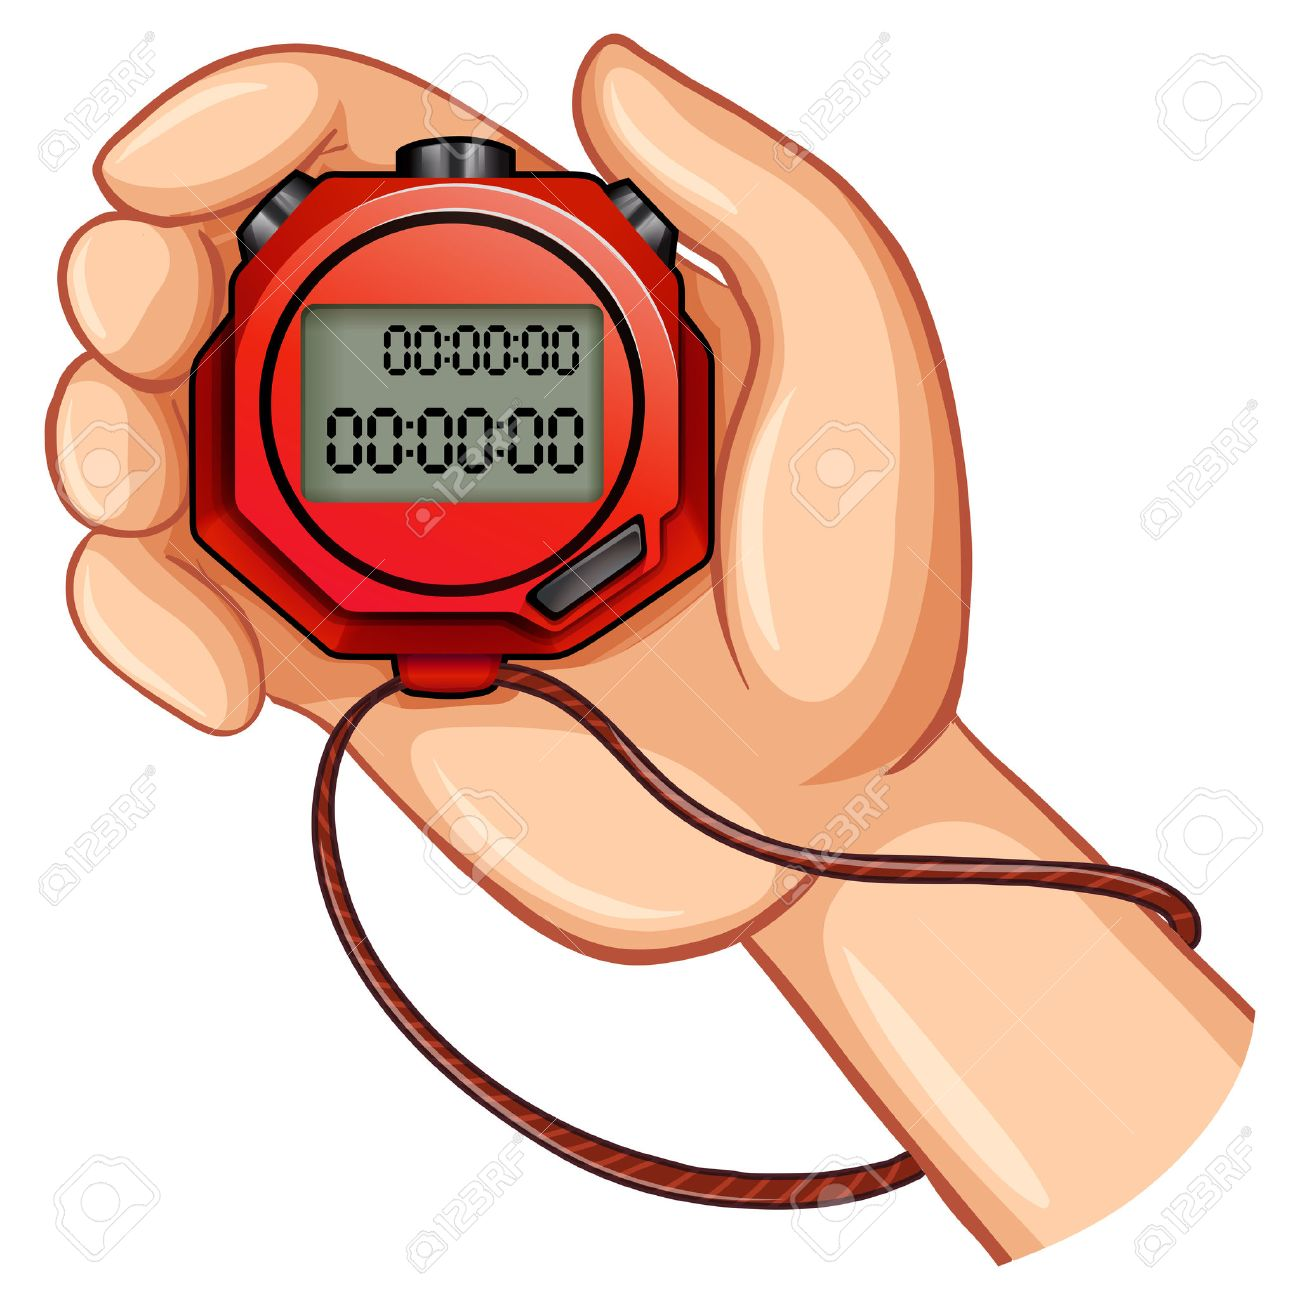 person using digital stopwatch illustration royalty free cliparts rh 123rf com